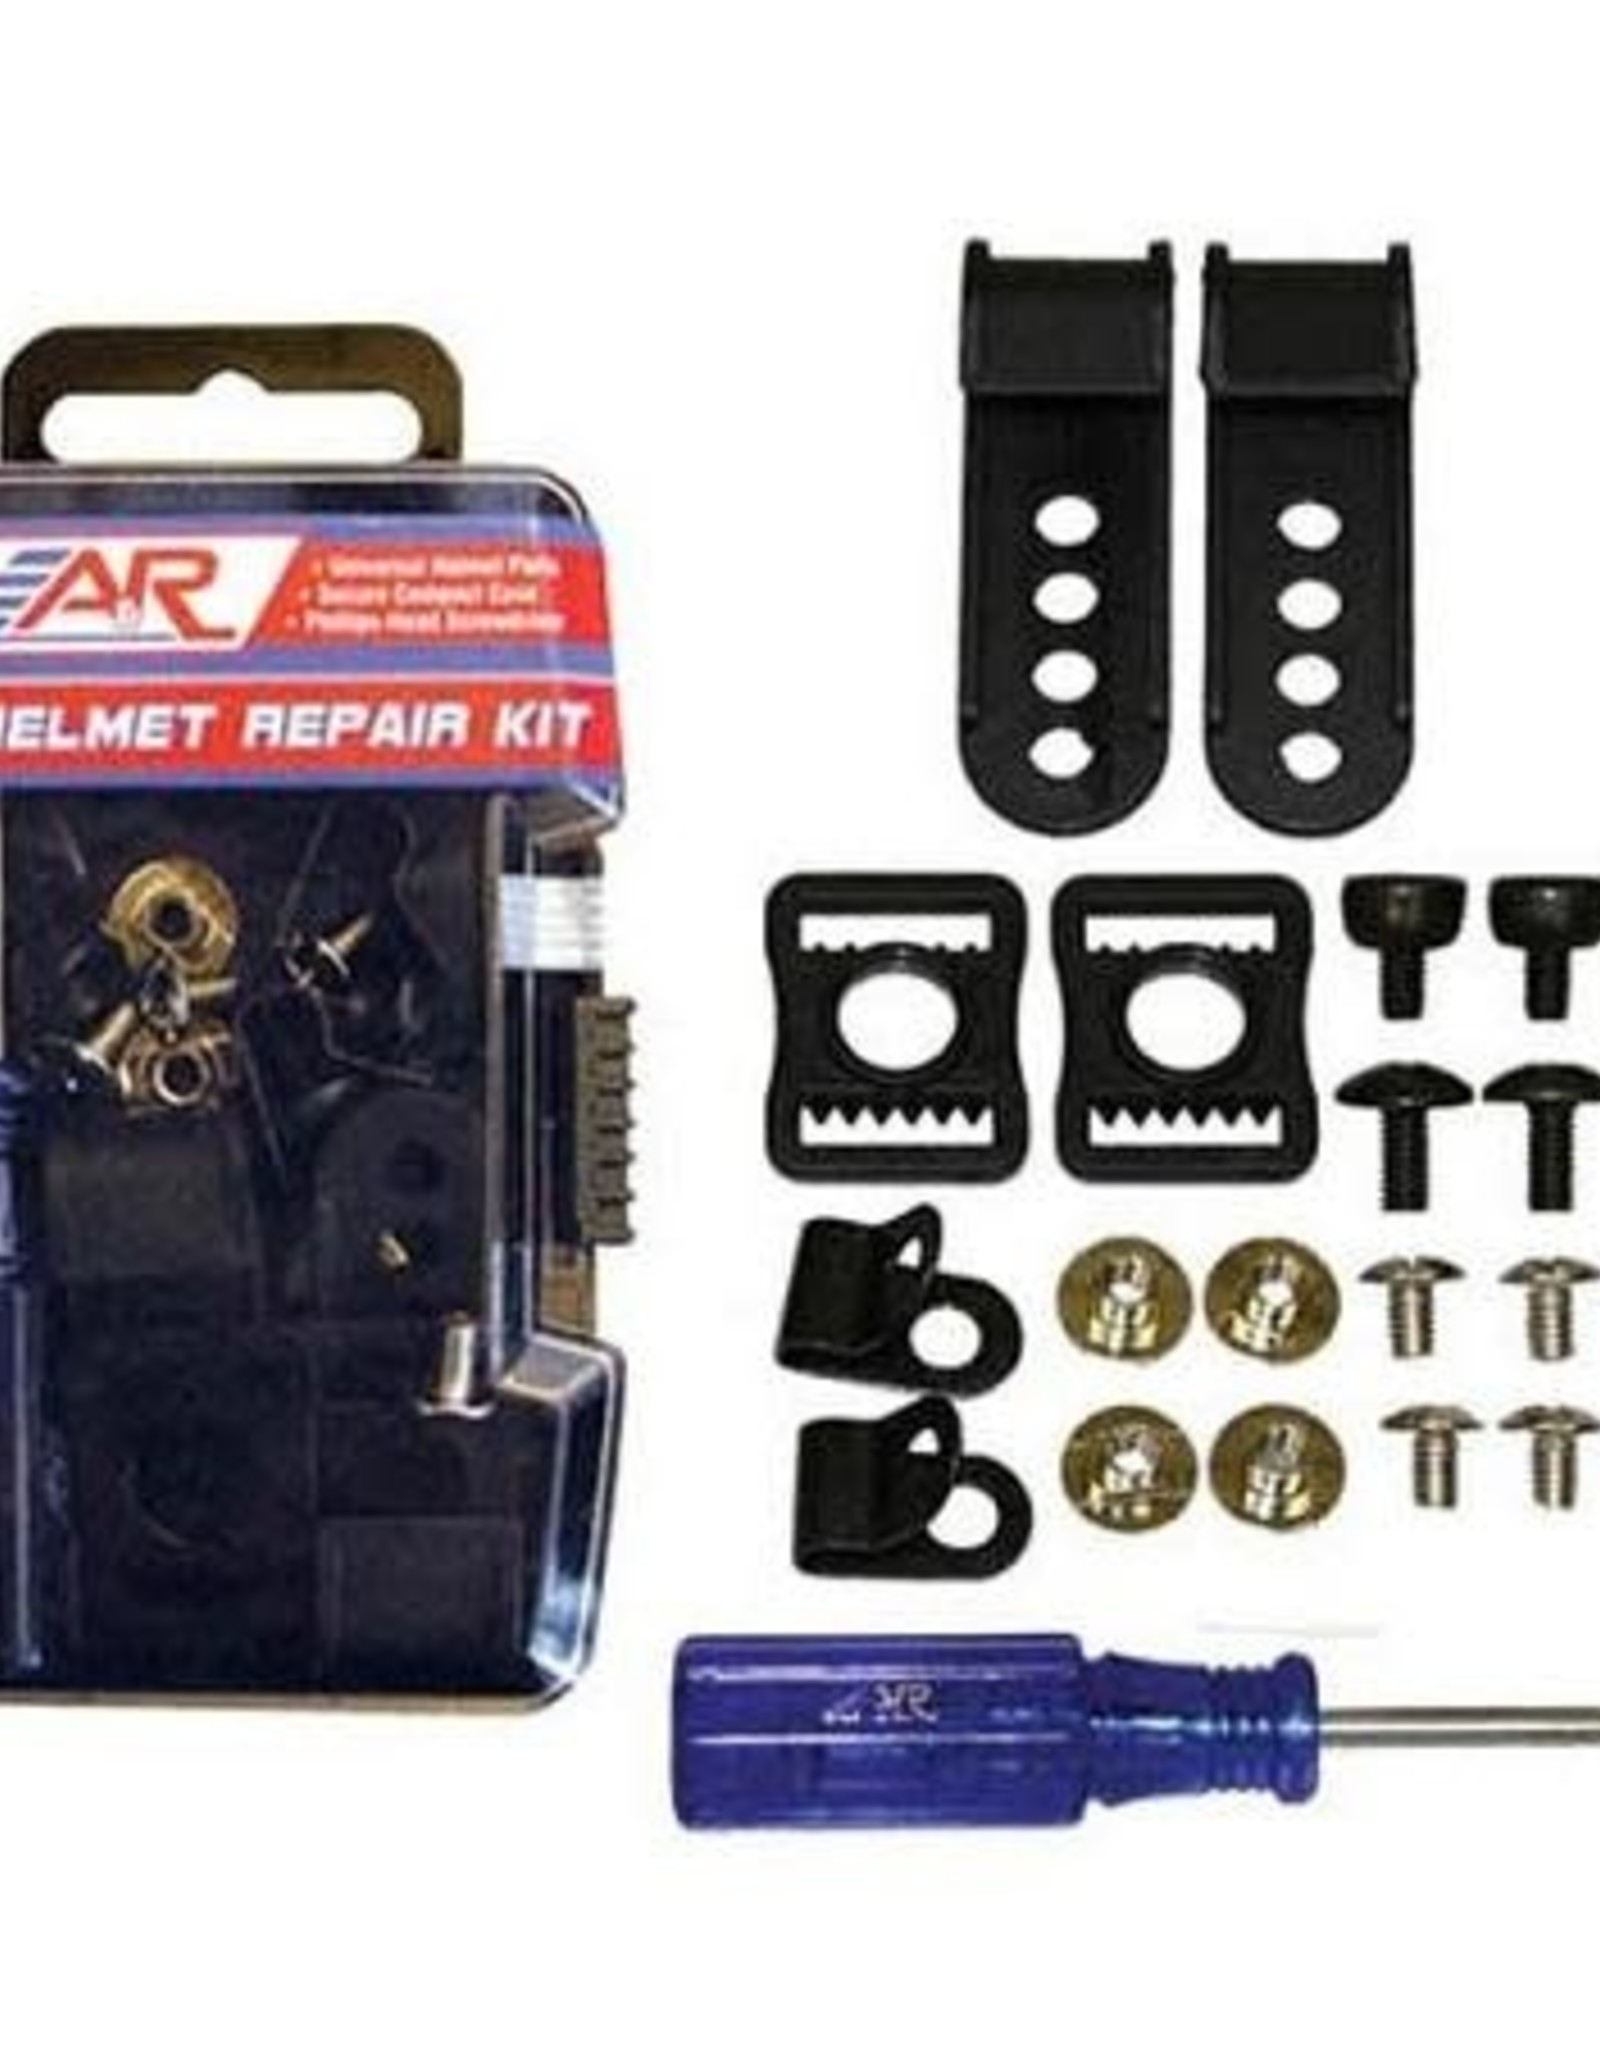 A&R A&R Helmet Repair Kit